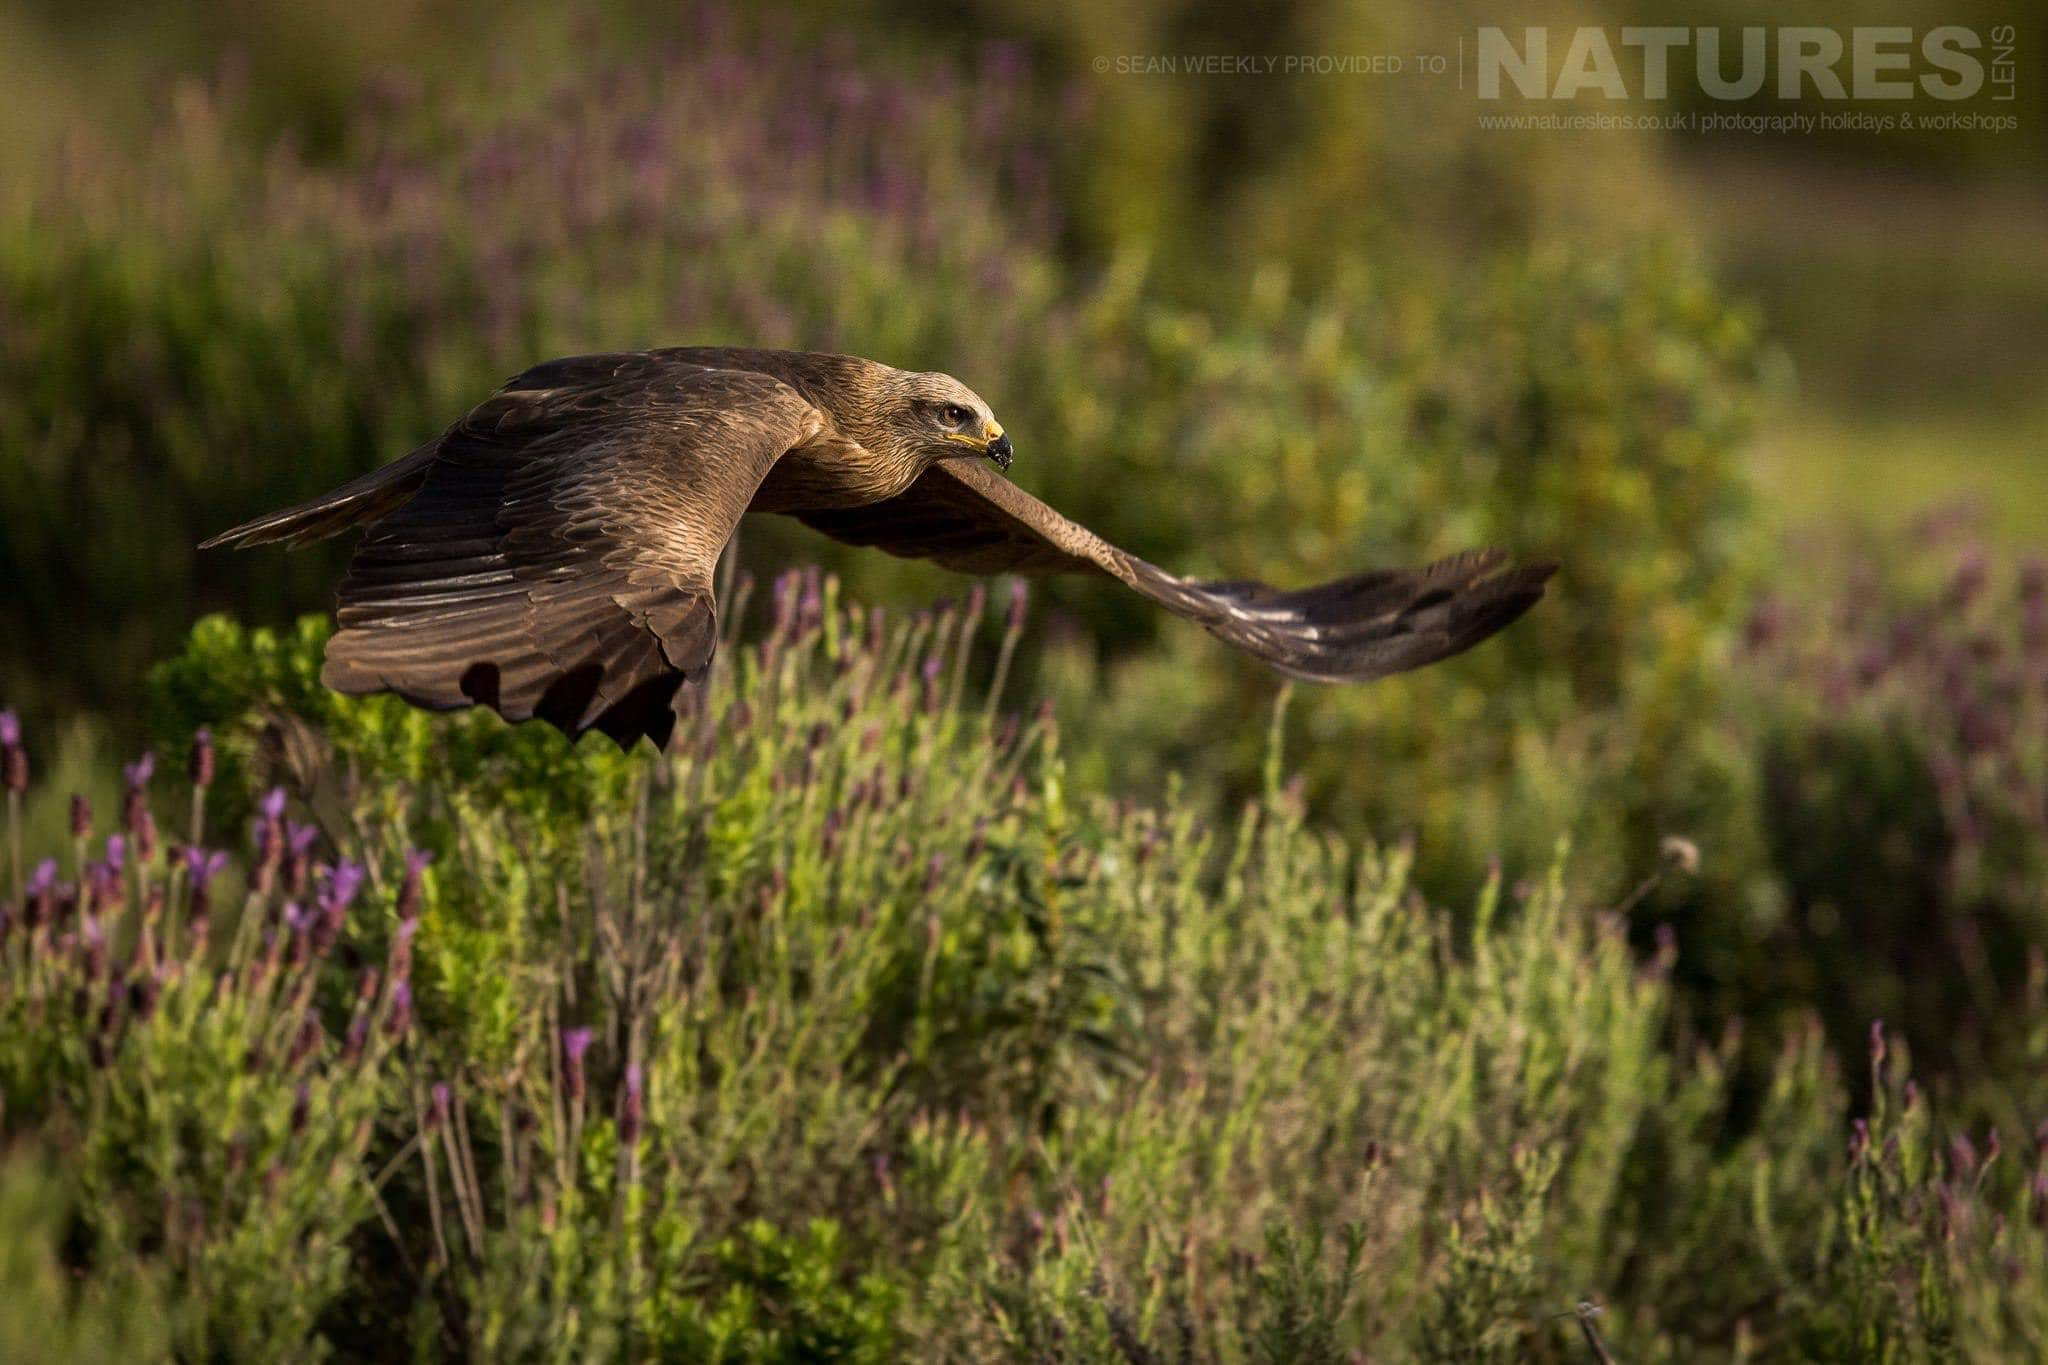 An Iberian Black Kite Glides Over The Field Of Heather At The Carrion Hide   Image Captured During The 2018 Spanish Bird Photography Holiday In Calera